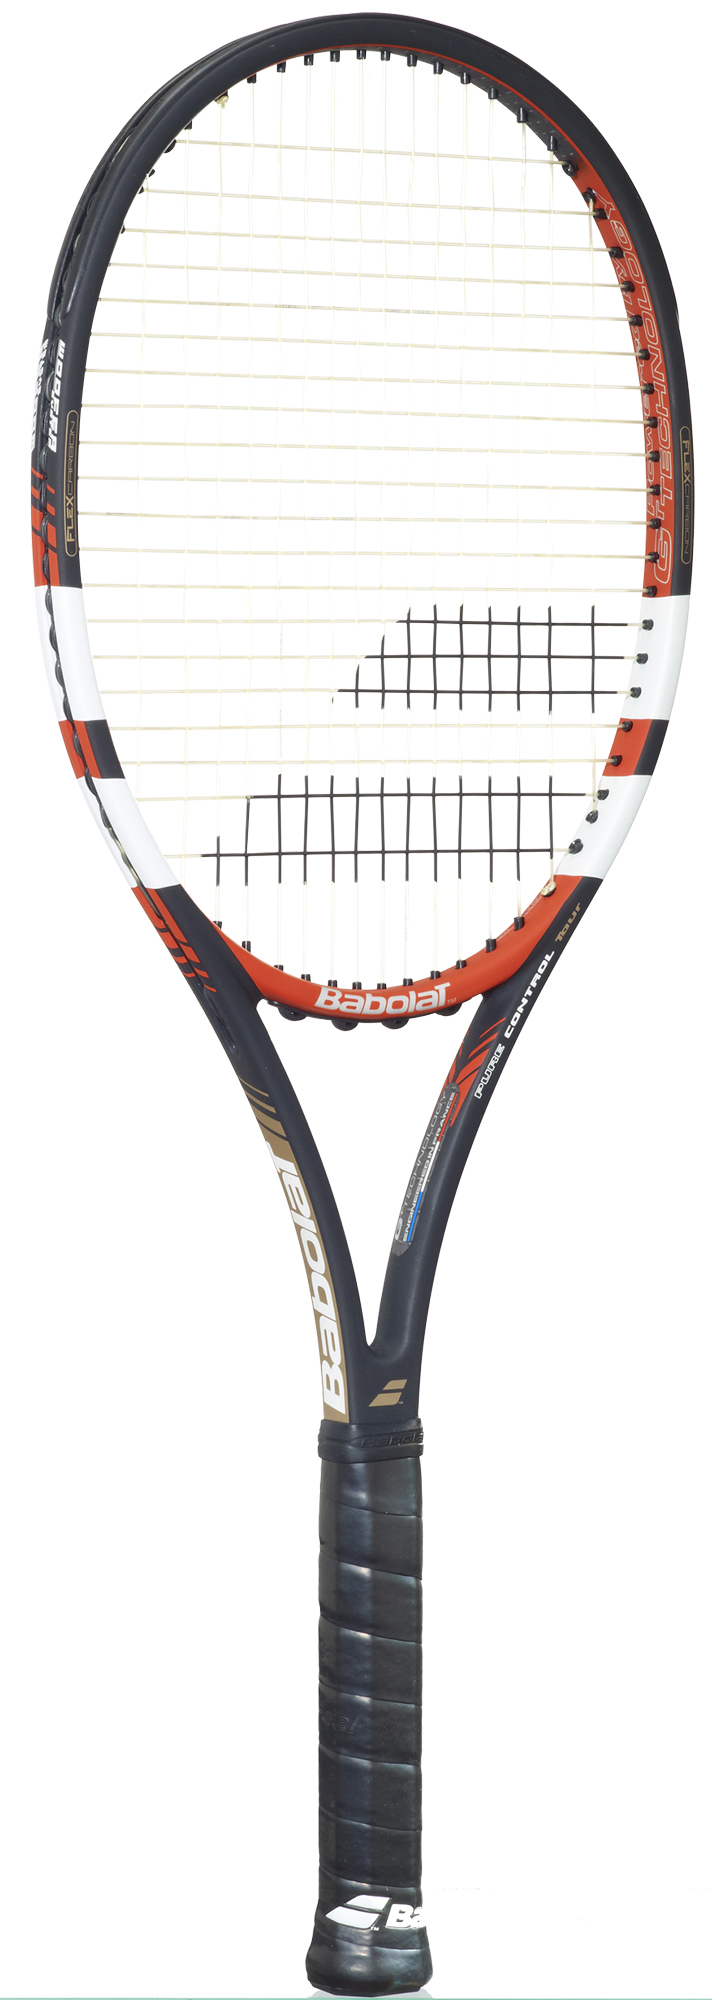 babolat pure control tour tennis racquet from do it tennis. Black Bedroom Furniture Sets. Home Design Ideas